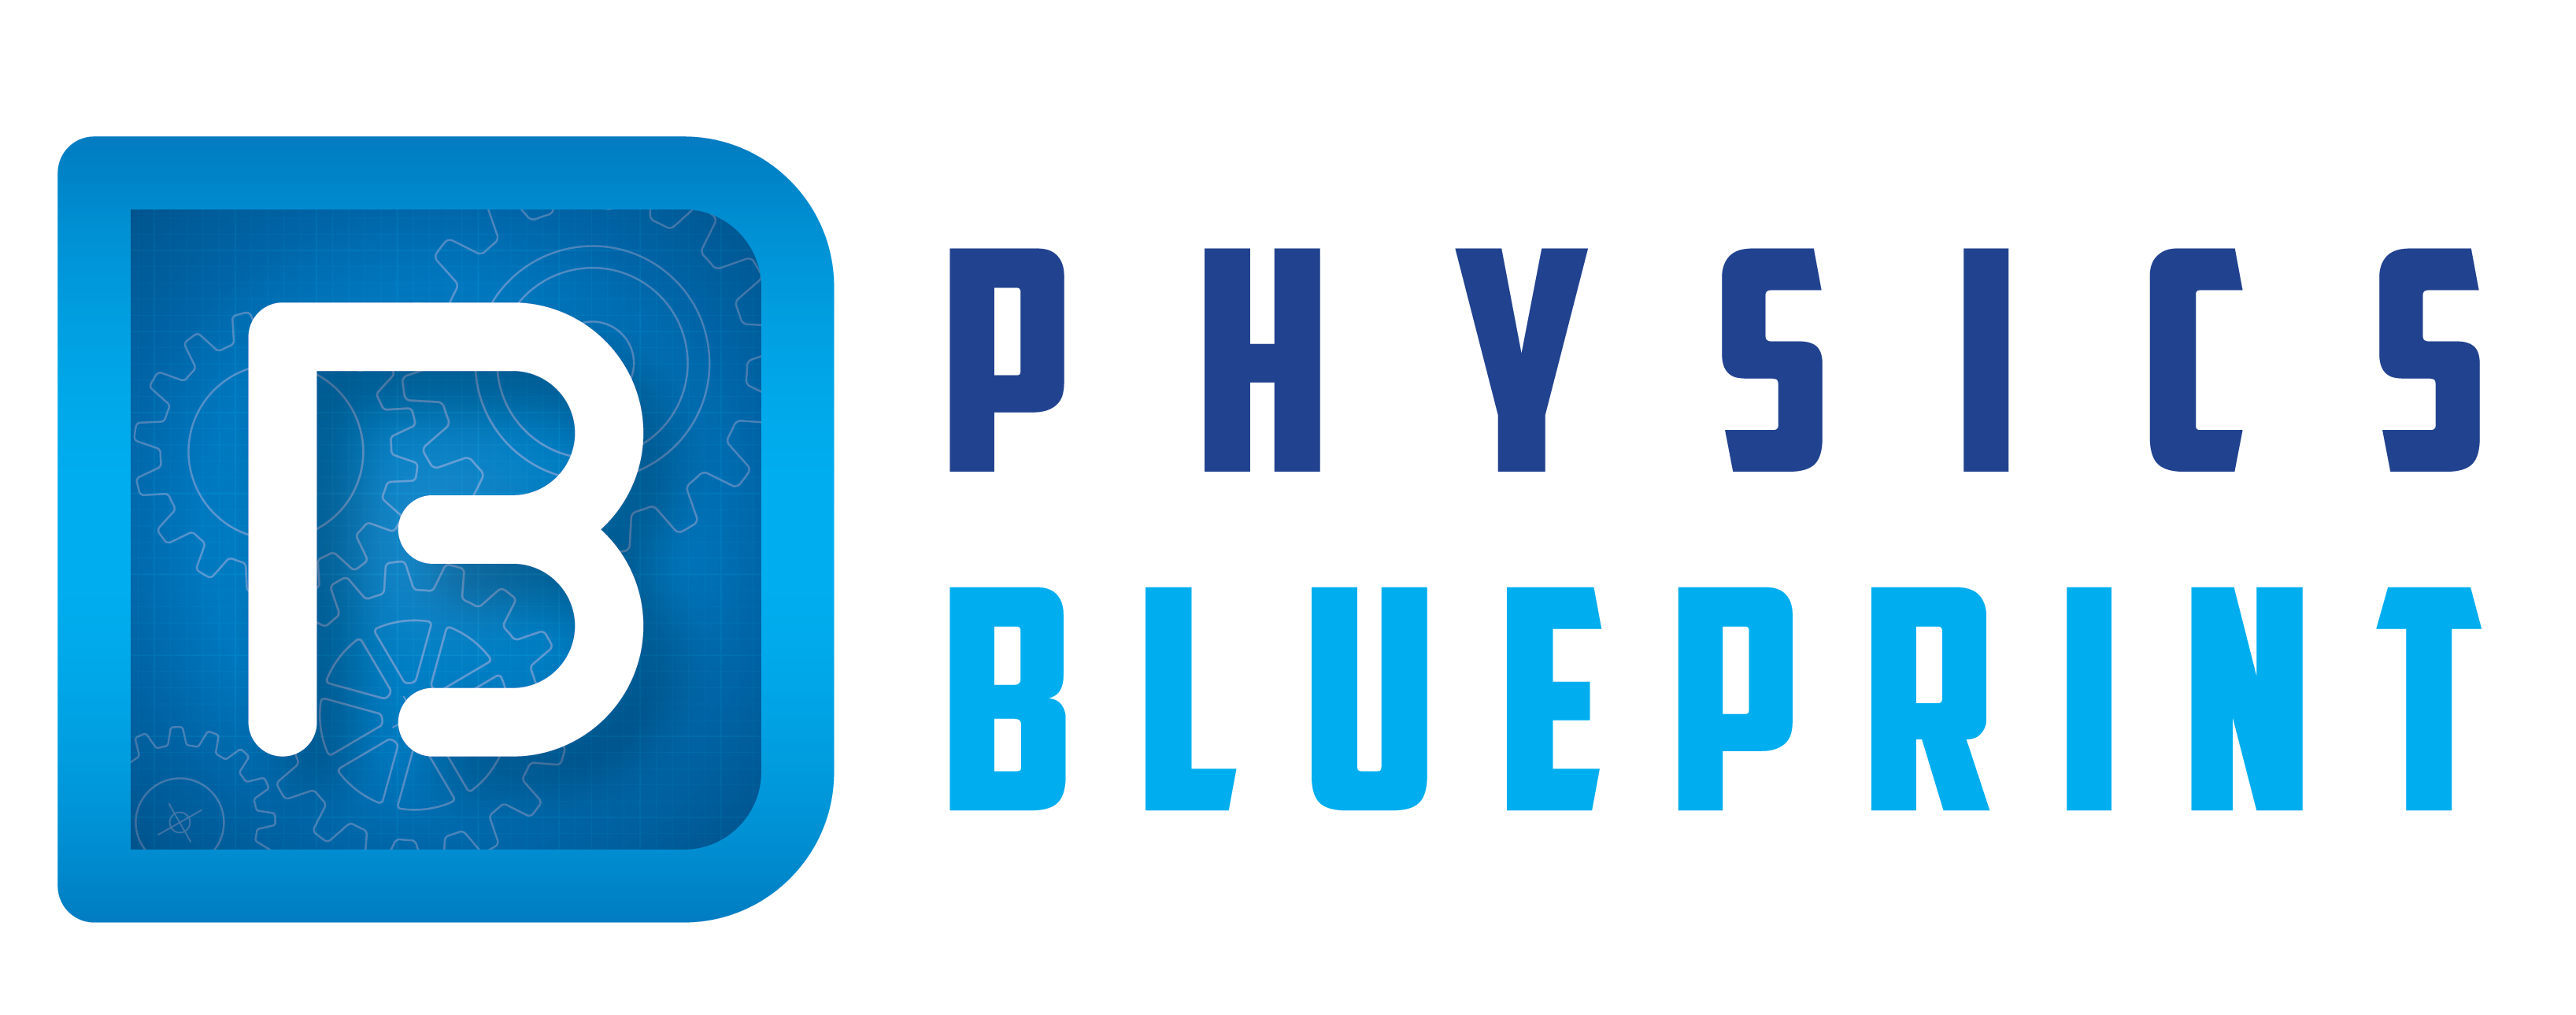 Physics Blueprint Online